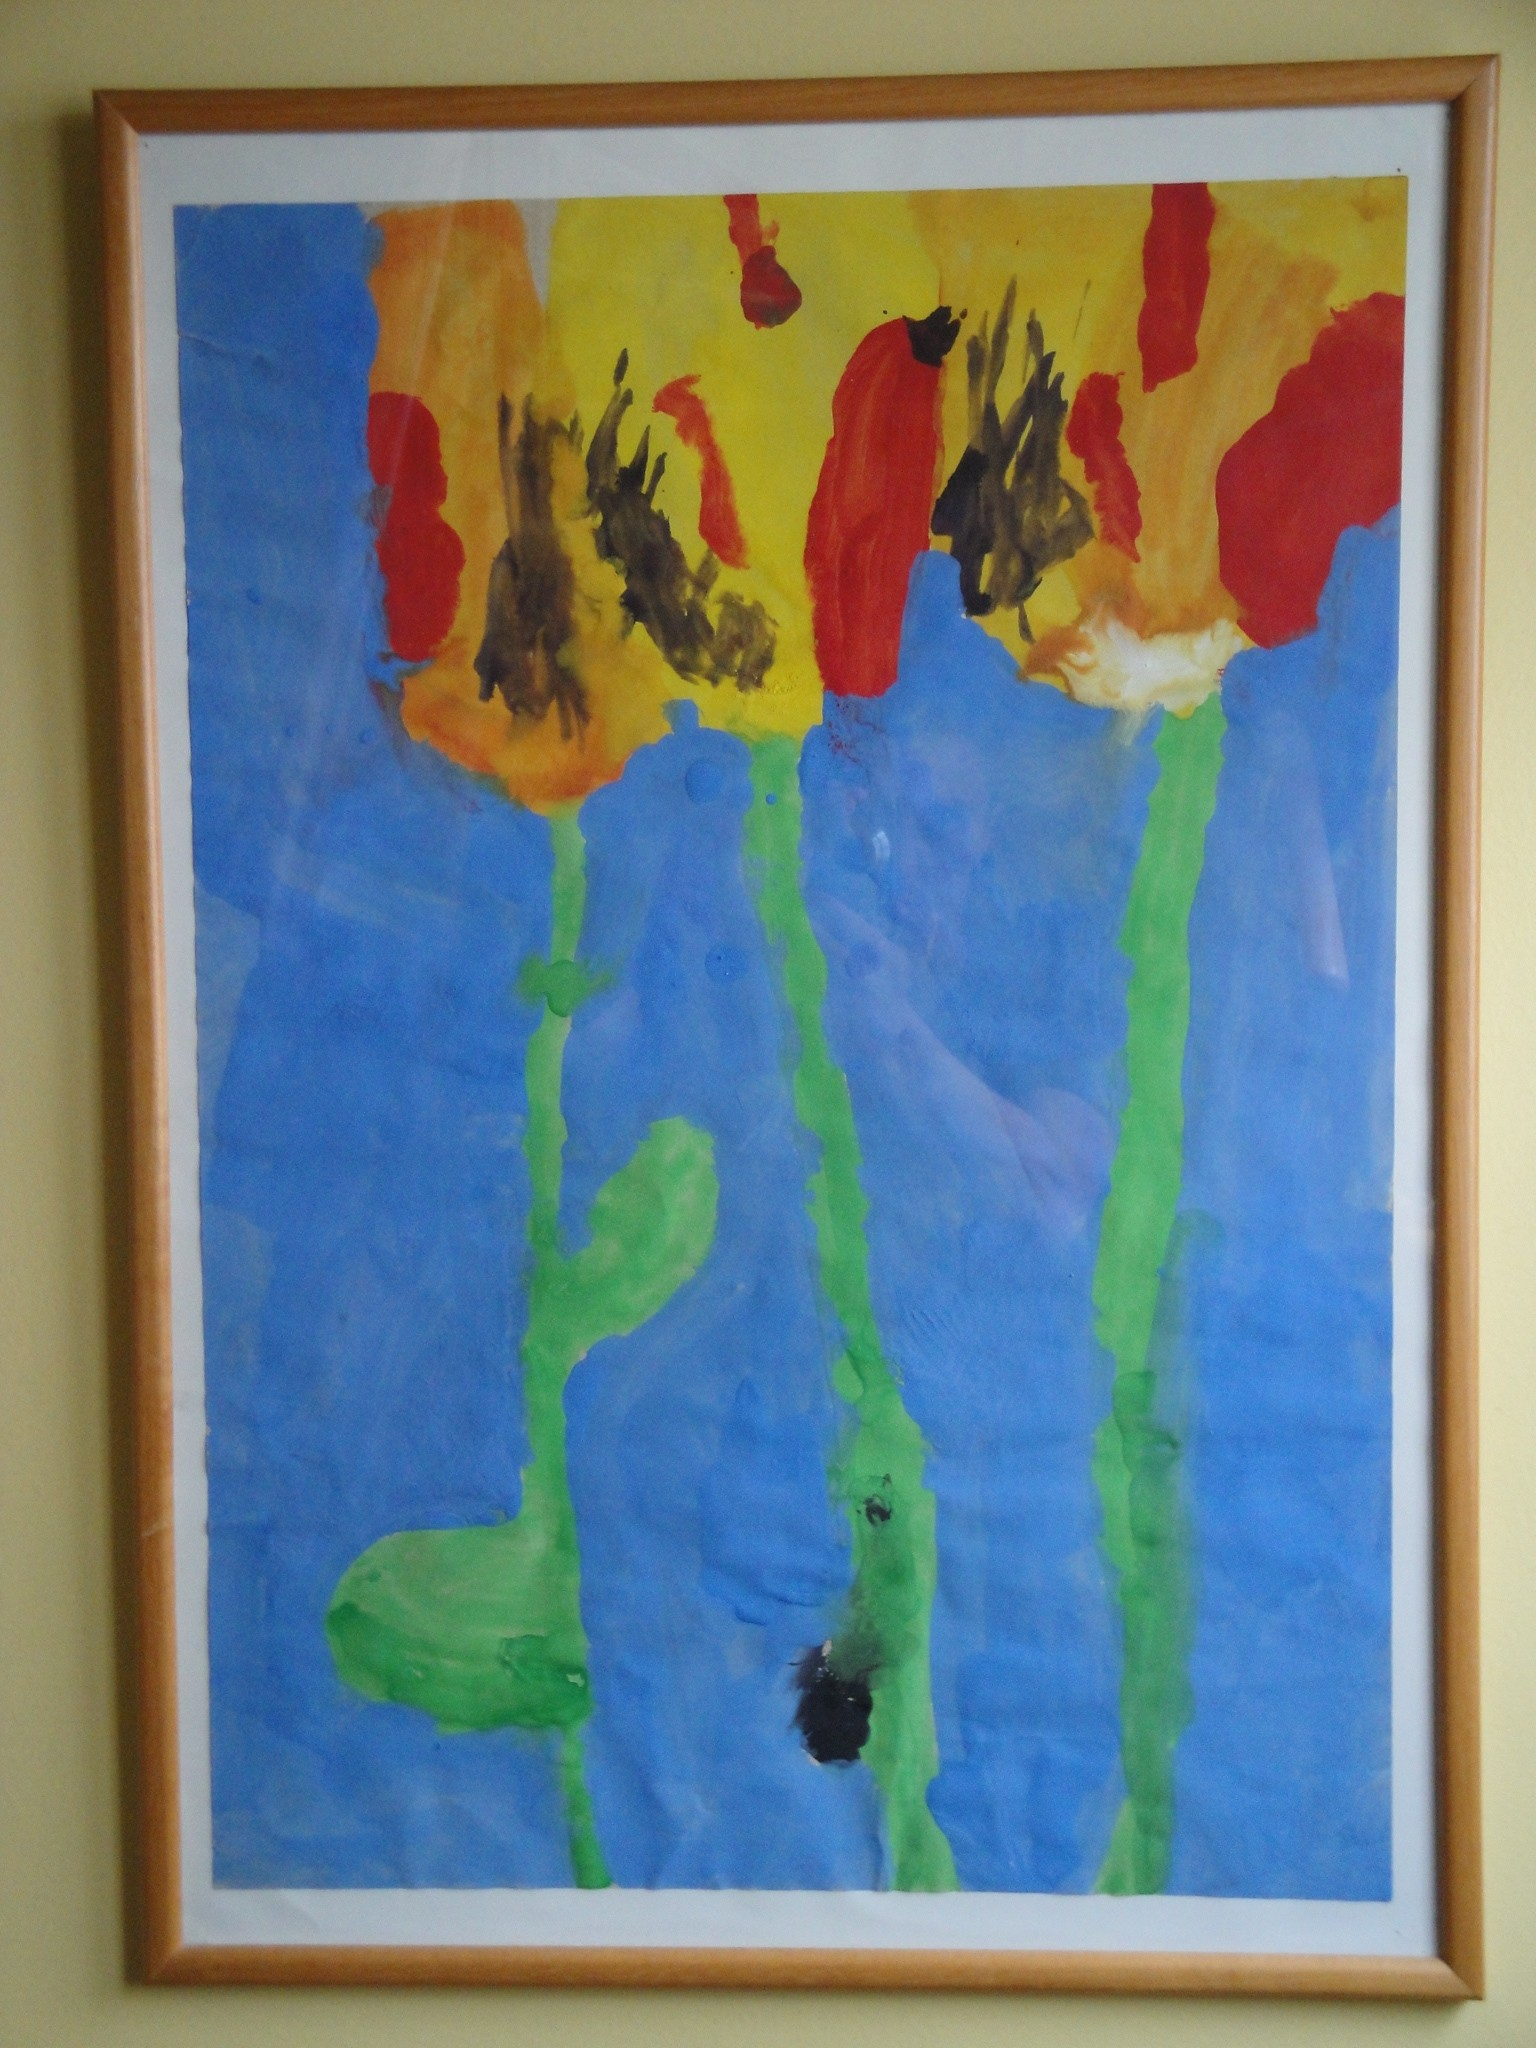 today-in-the-mfm-office-weve-been-talking-about-child-artists_14998